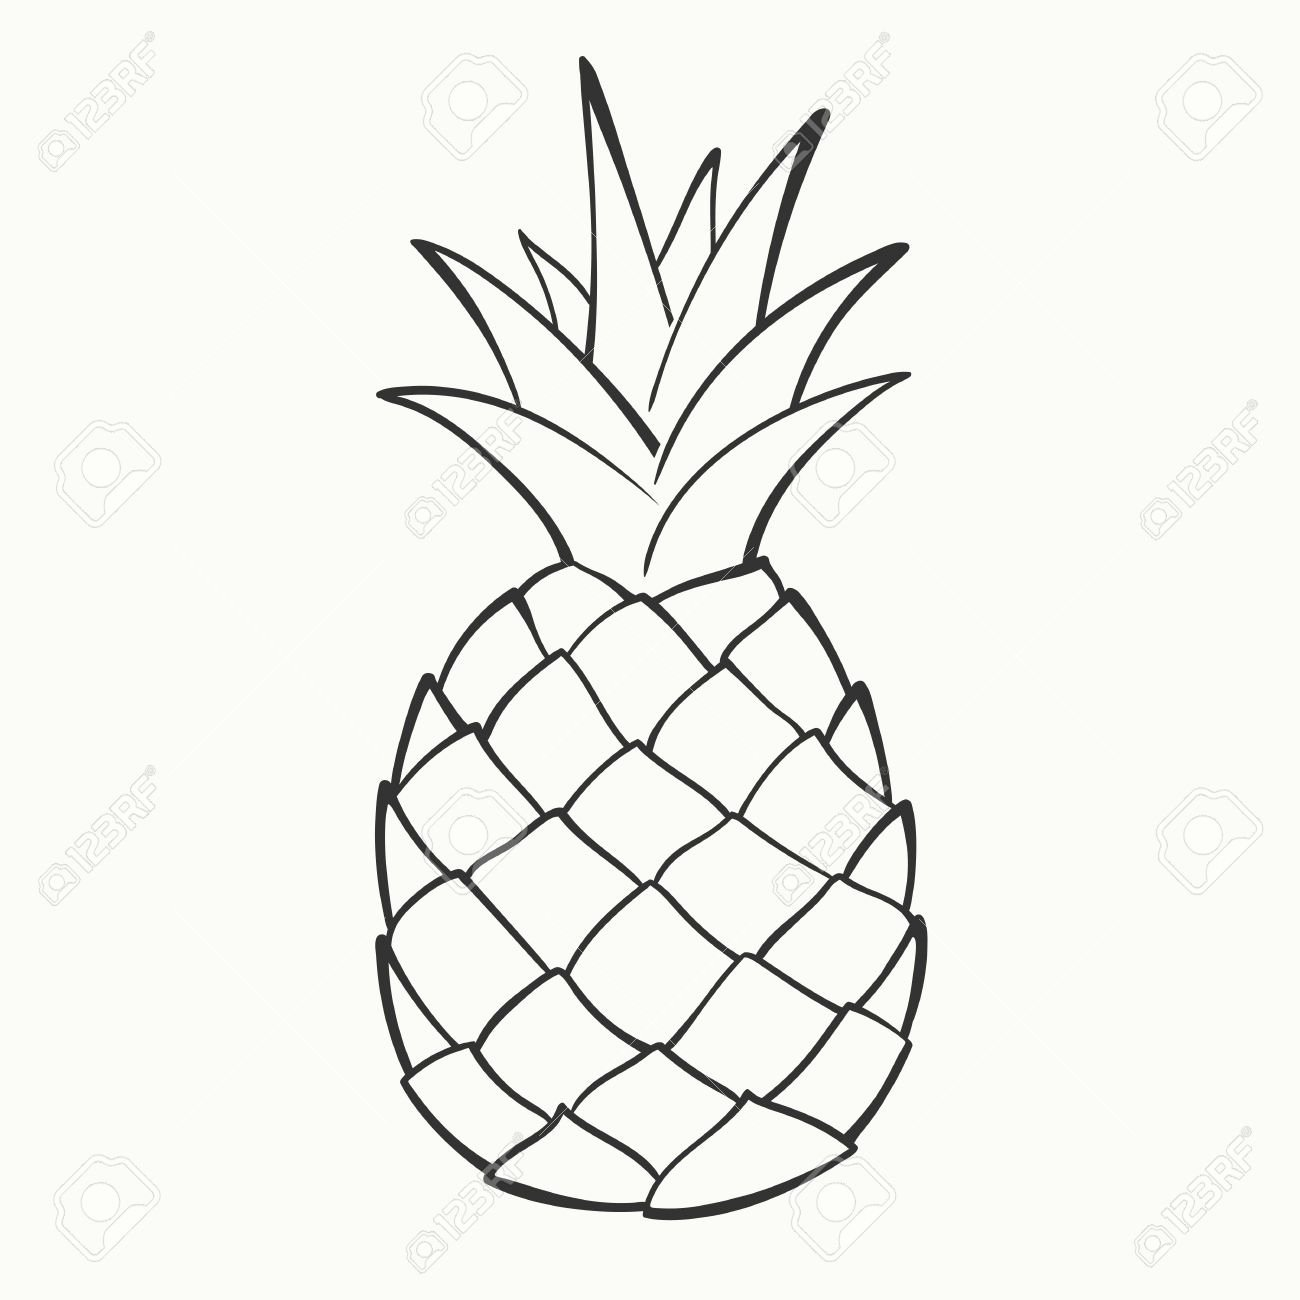 Pineapple Leaf Template Awesome Stock Vector In 2019 E S Room